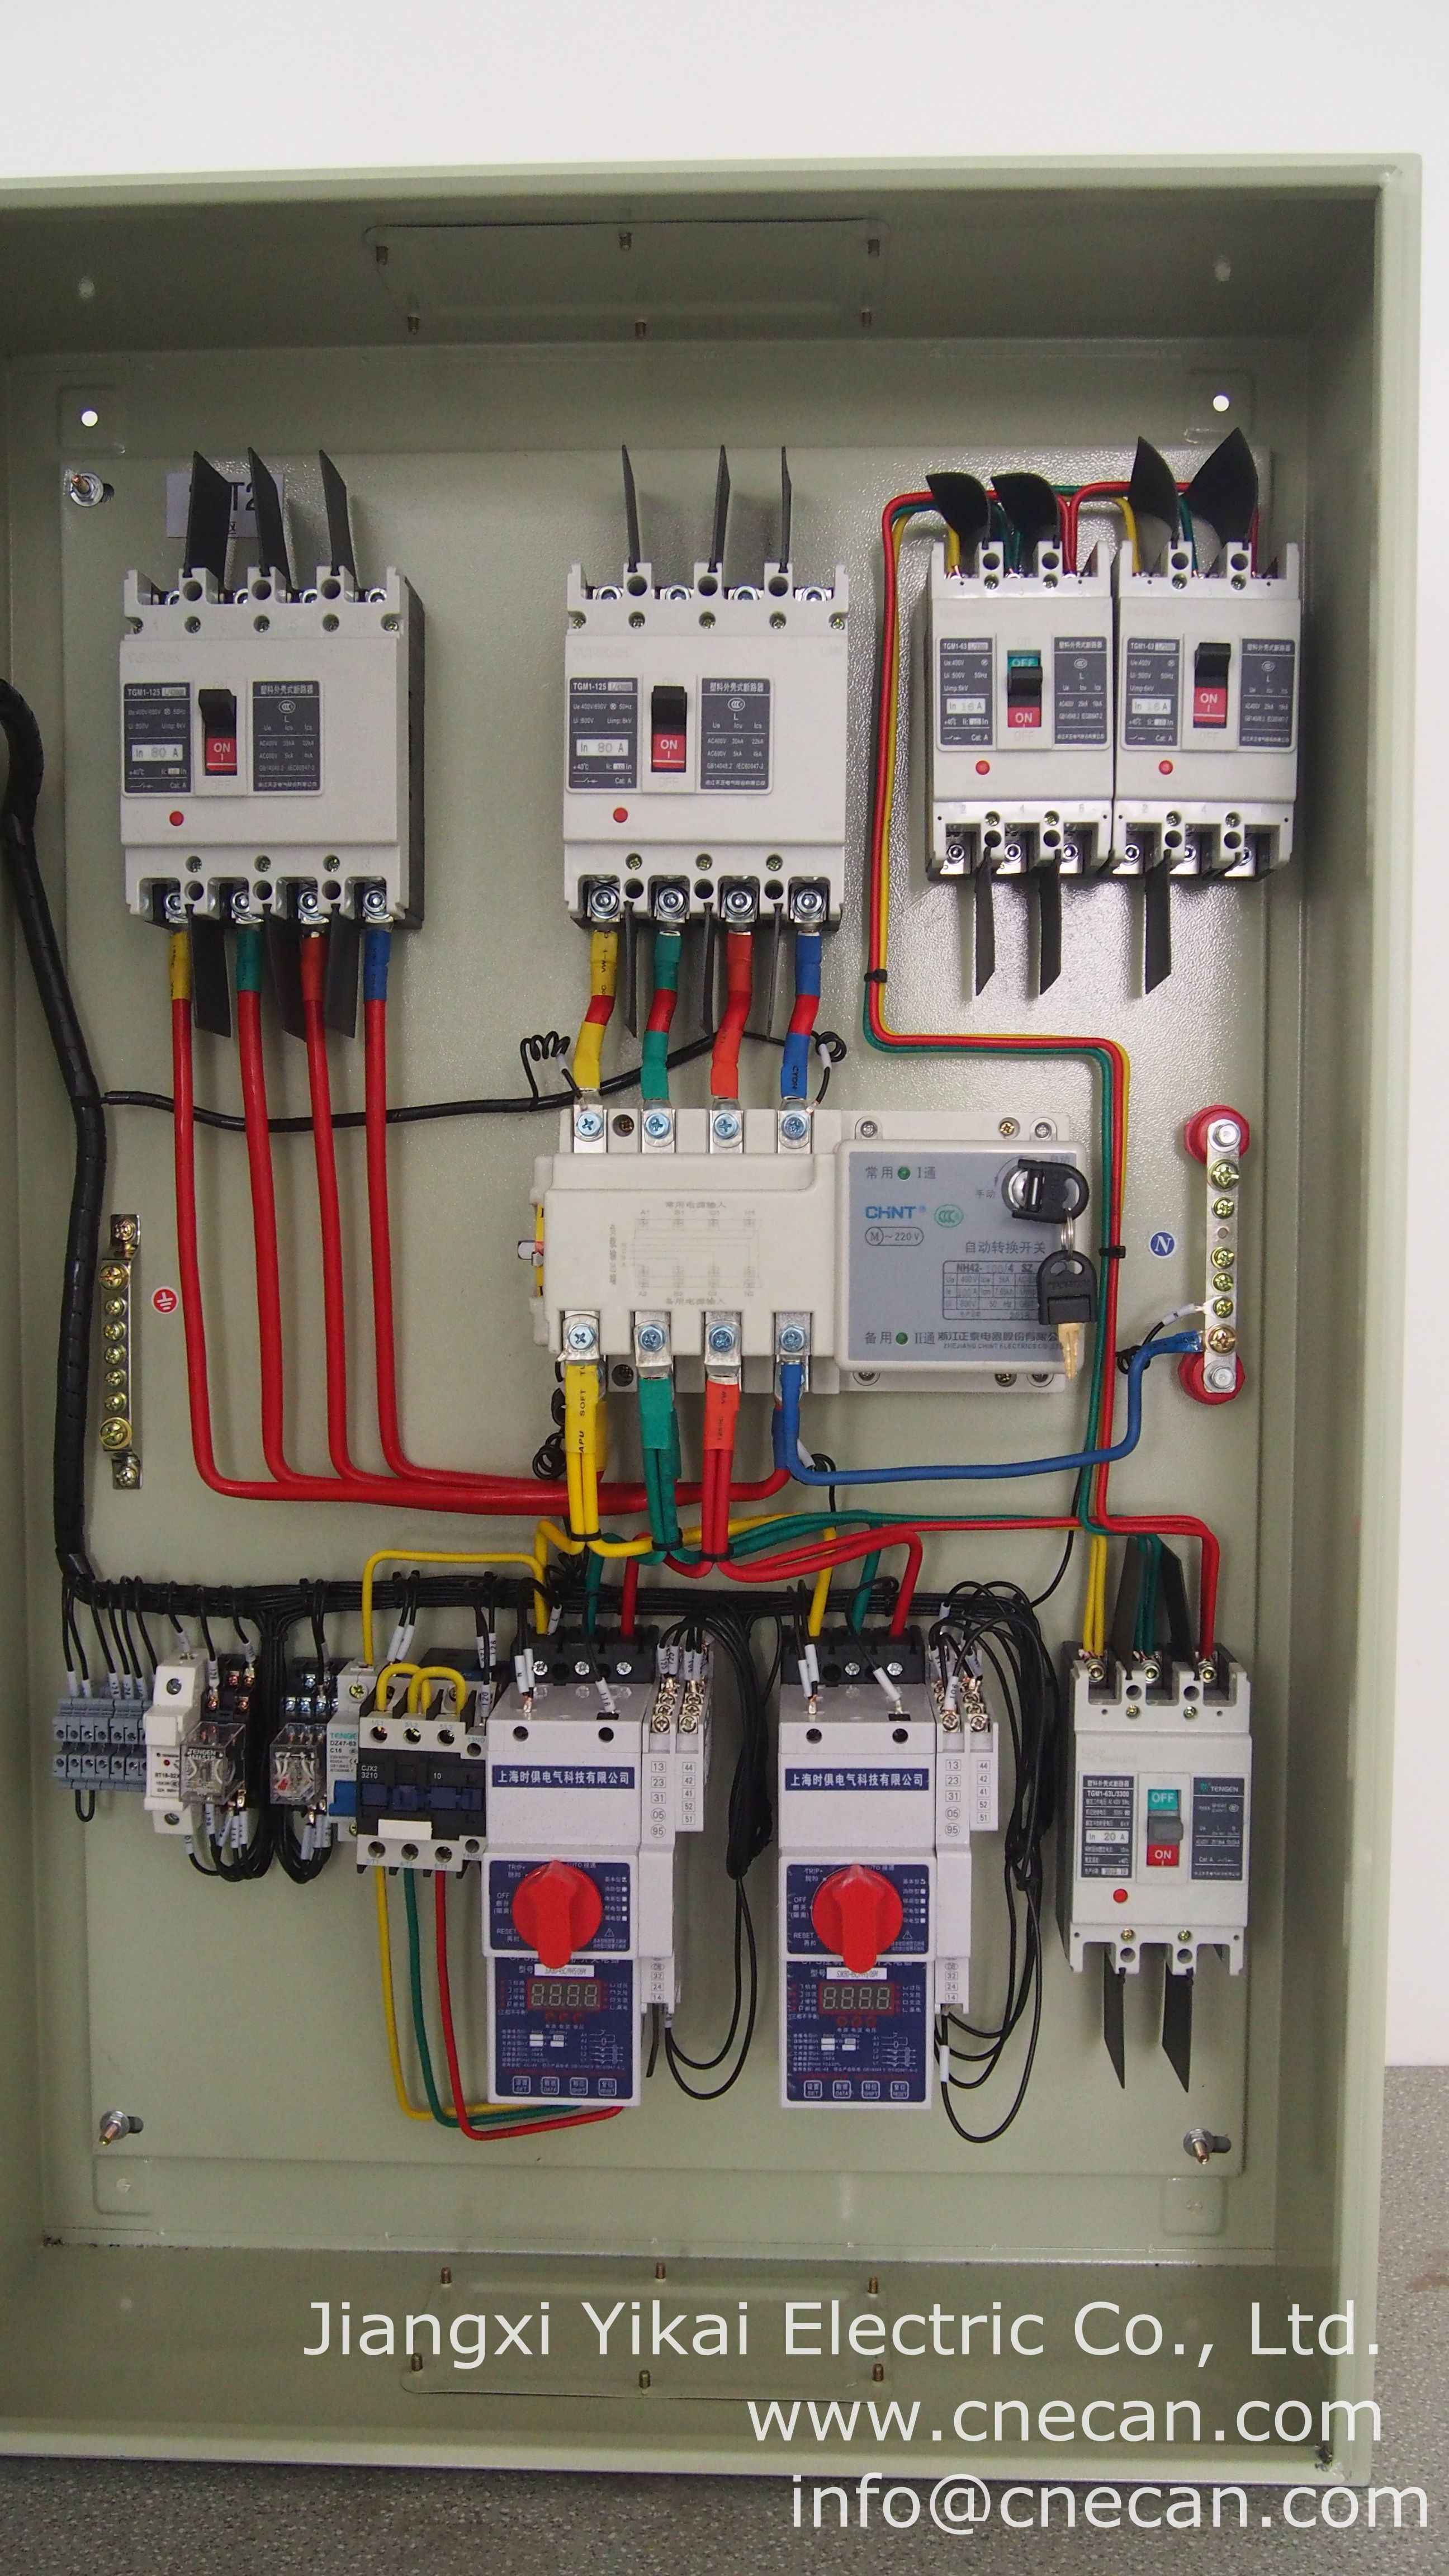 Pin By Blesia Zhao On Electrical Panel Distribution Boards Electrical Installation Distribution Board Electricity